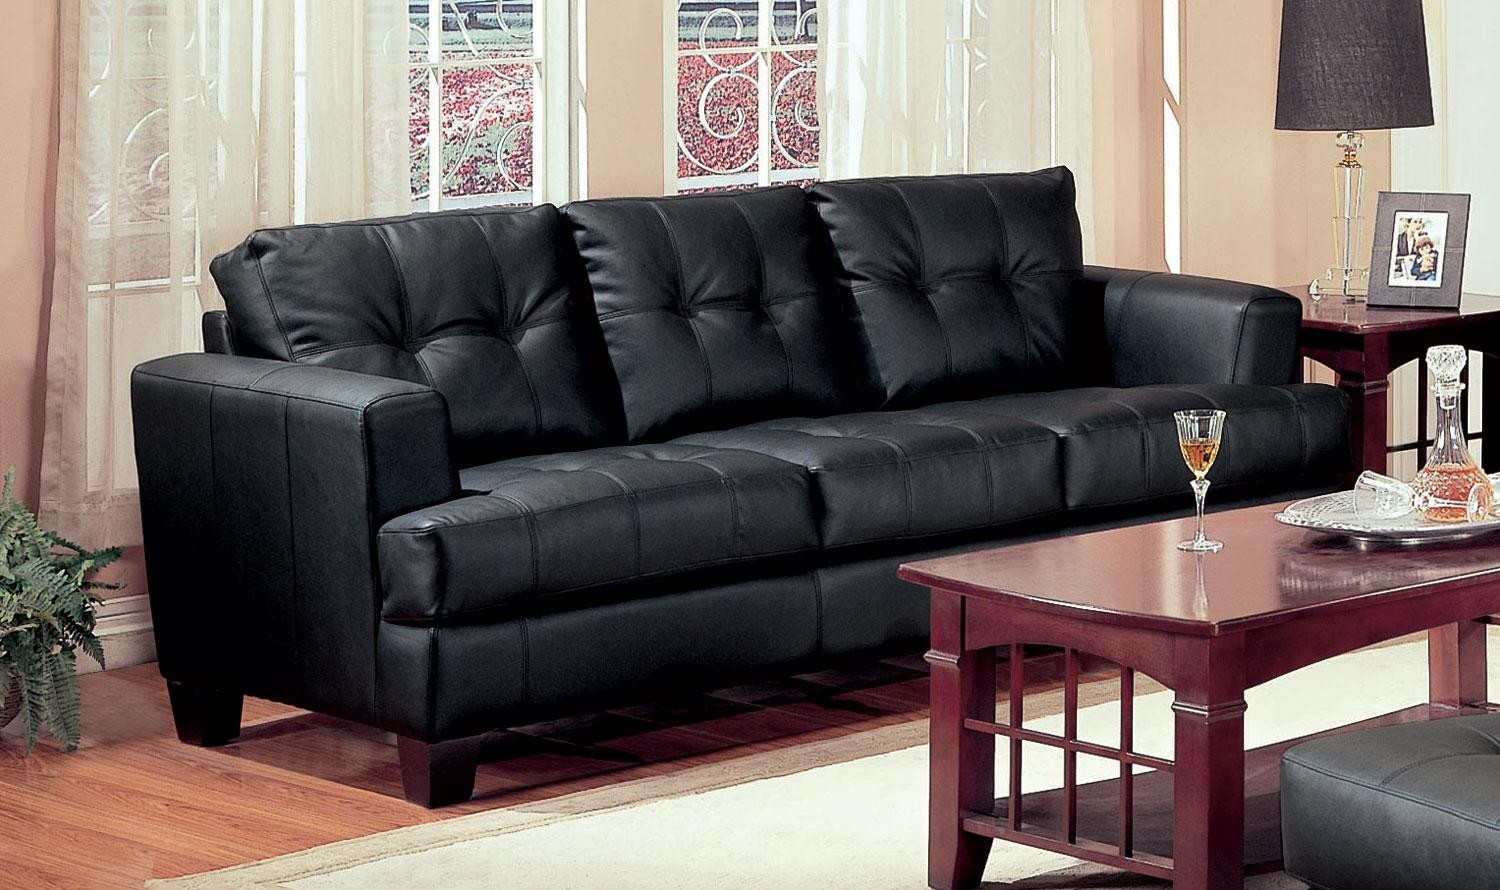 Samuel Black Leather Living Room Set 501681 From Coaster